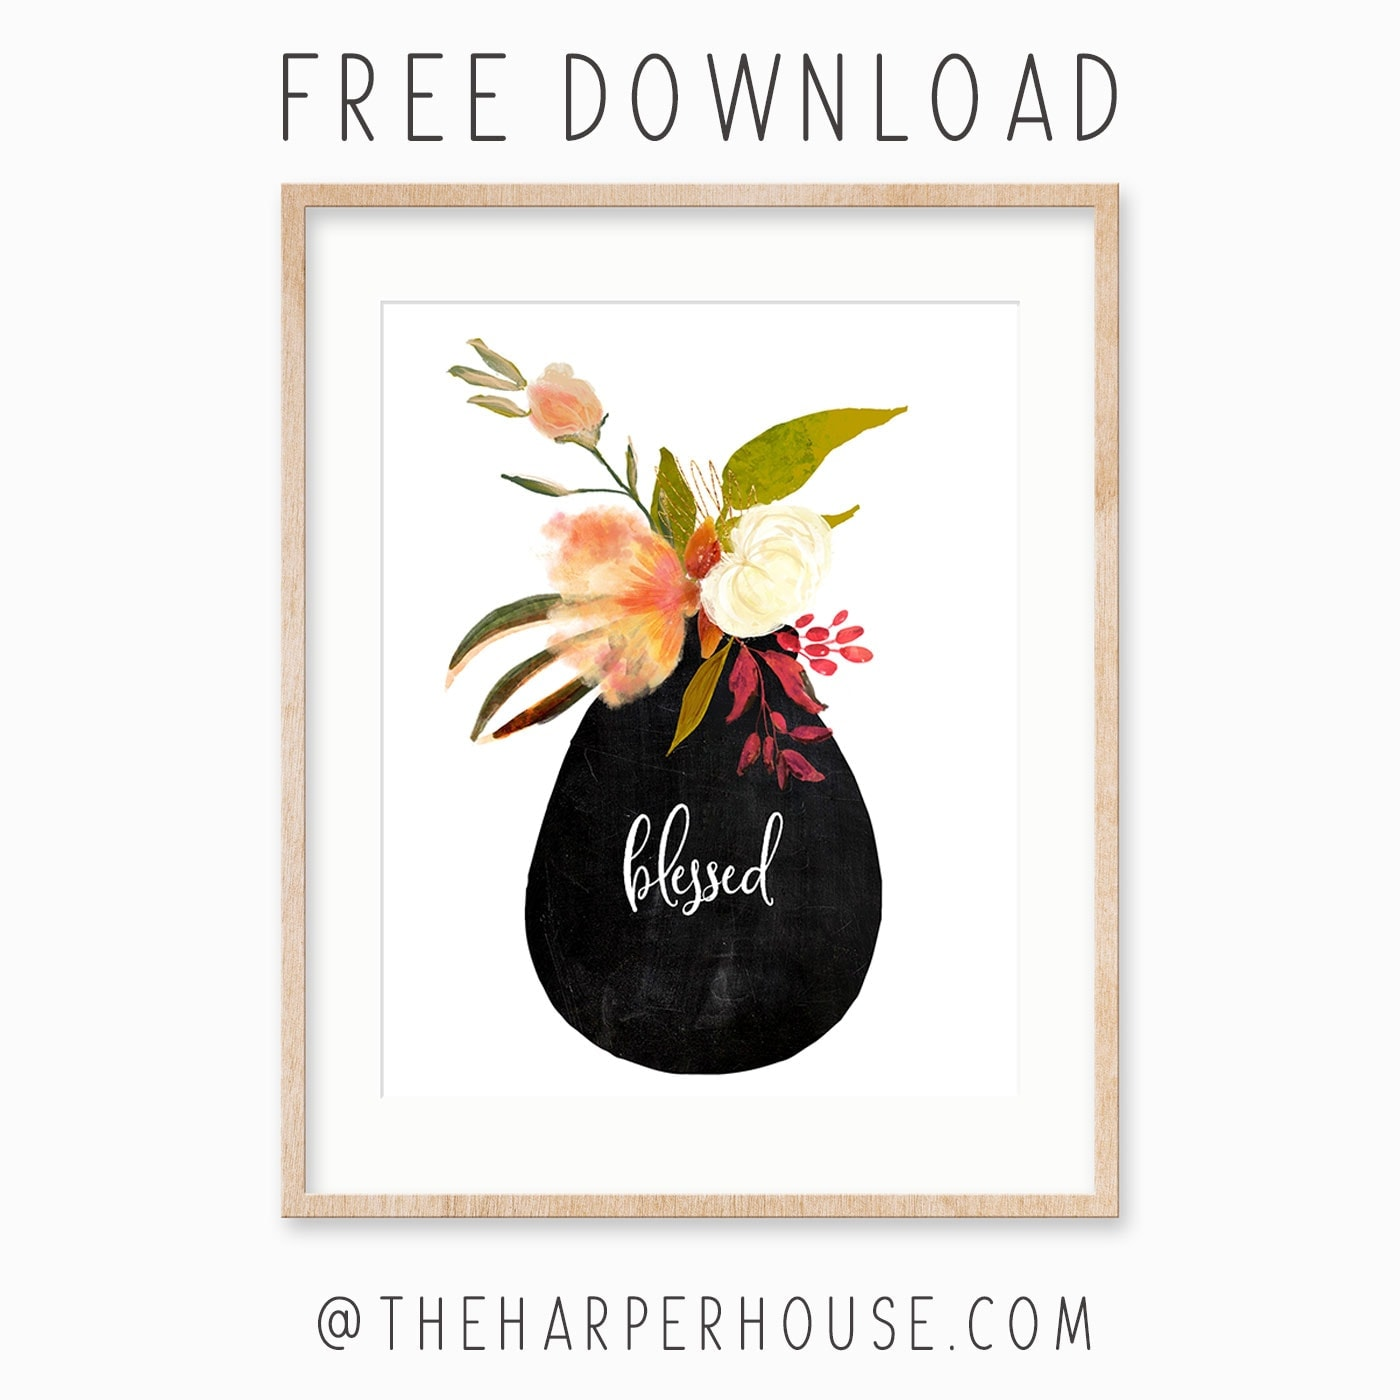 Free Thankful Grateful Blessed floral printables. Perfect for fall decorating and cheap easy wall art! #printable #freeprintable #falldecor